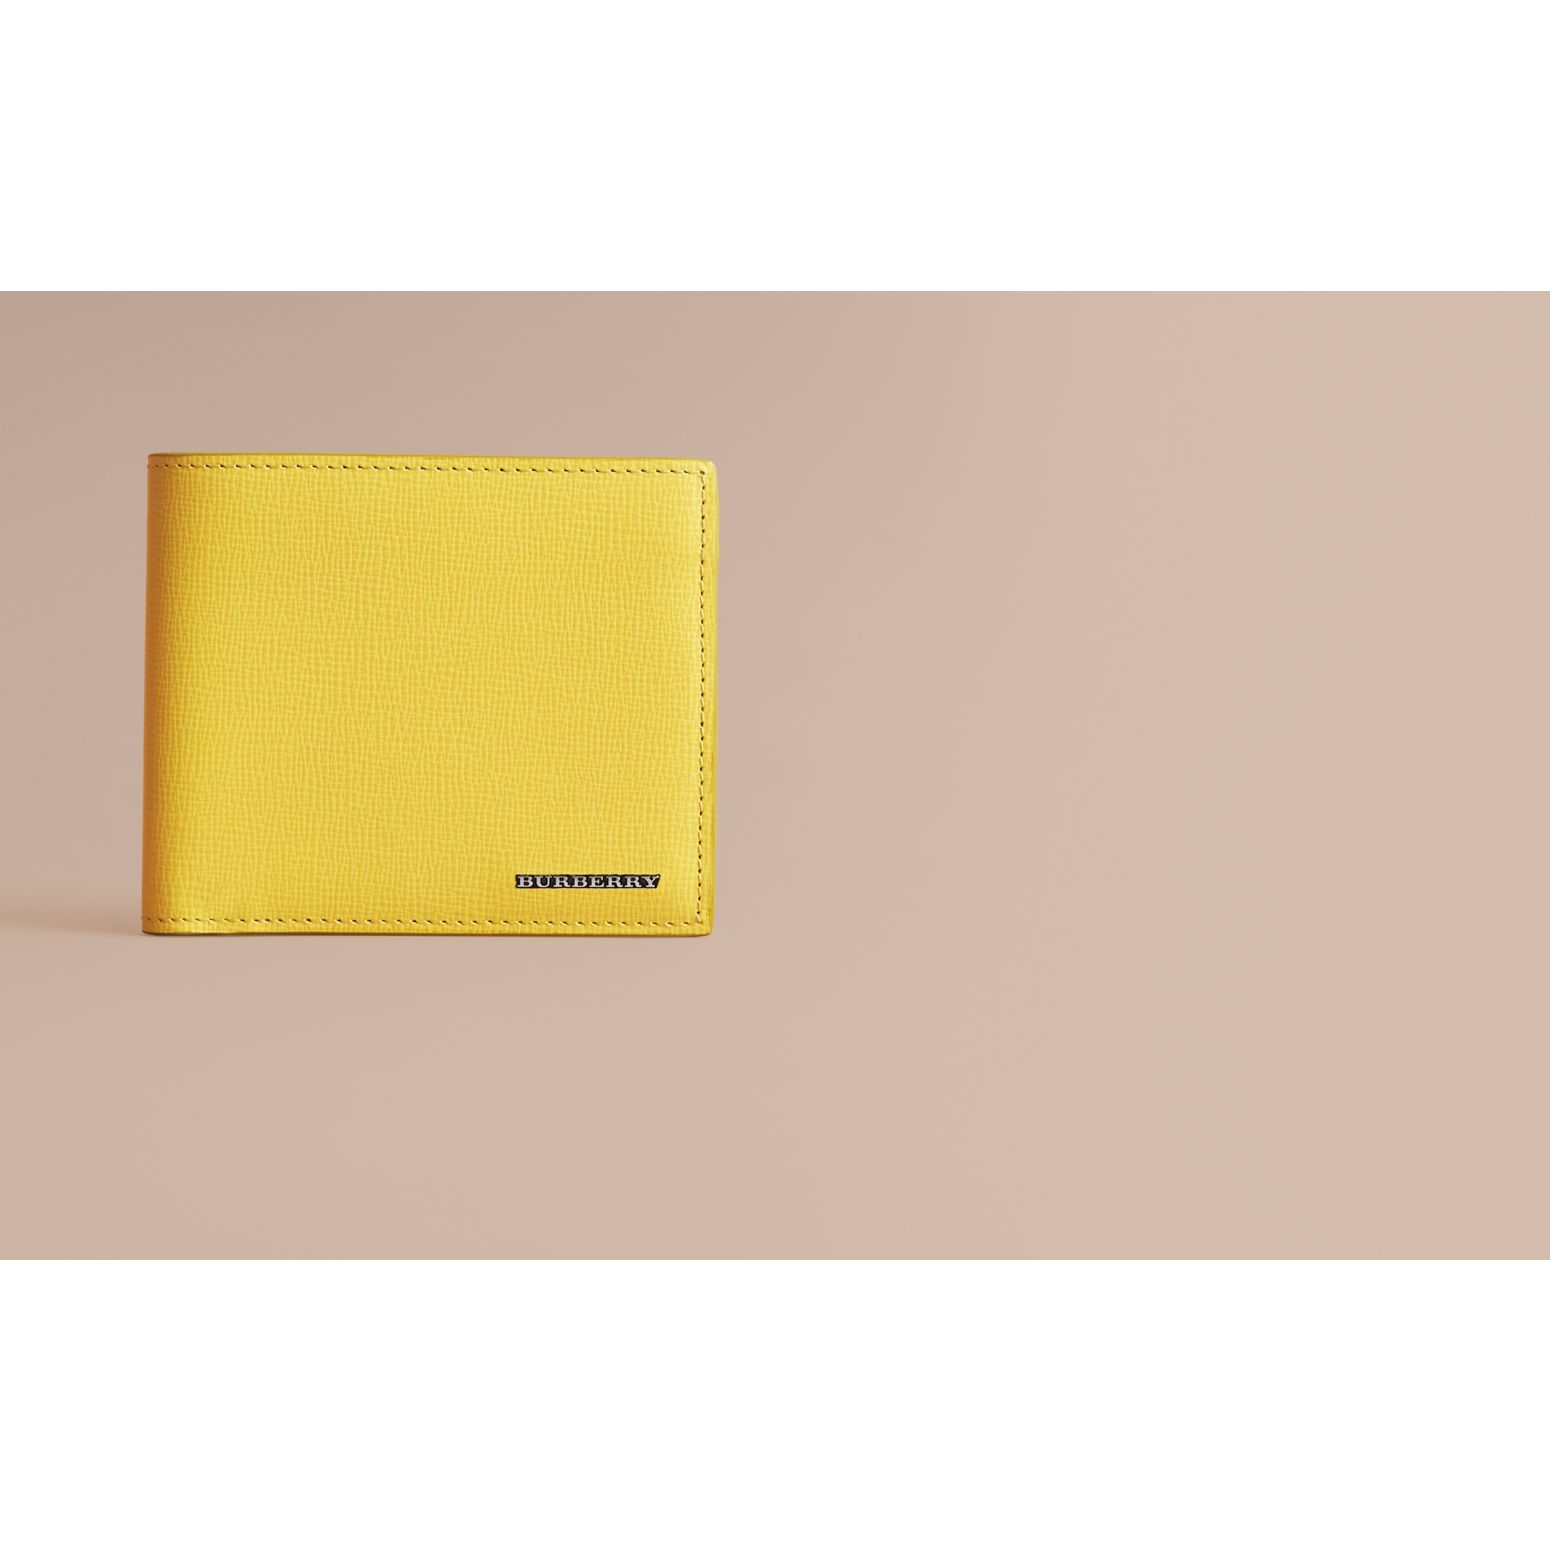 London Leather Folding Wallet in Bright Citrus | Burberry Singapore - gallery image 2